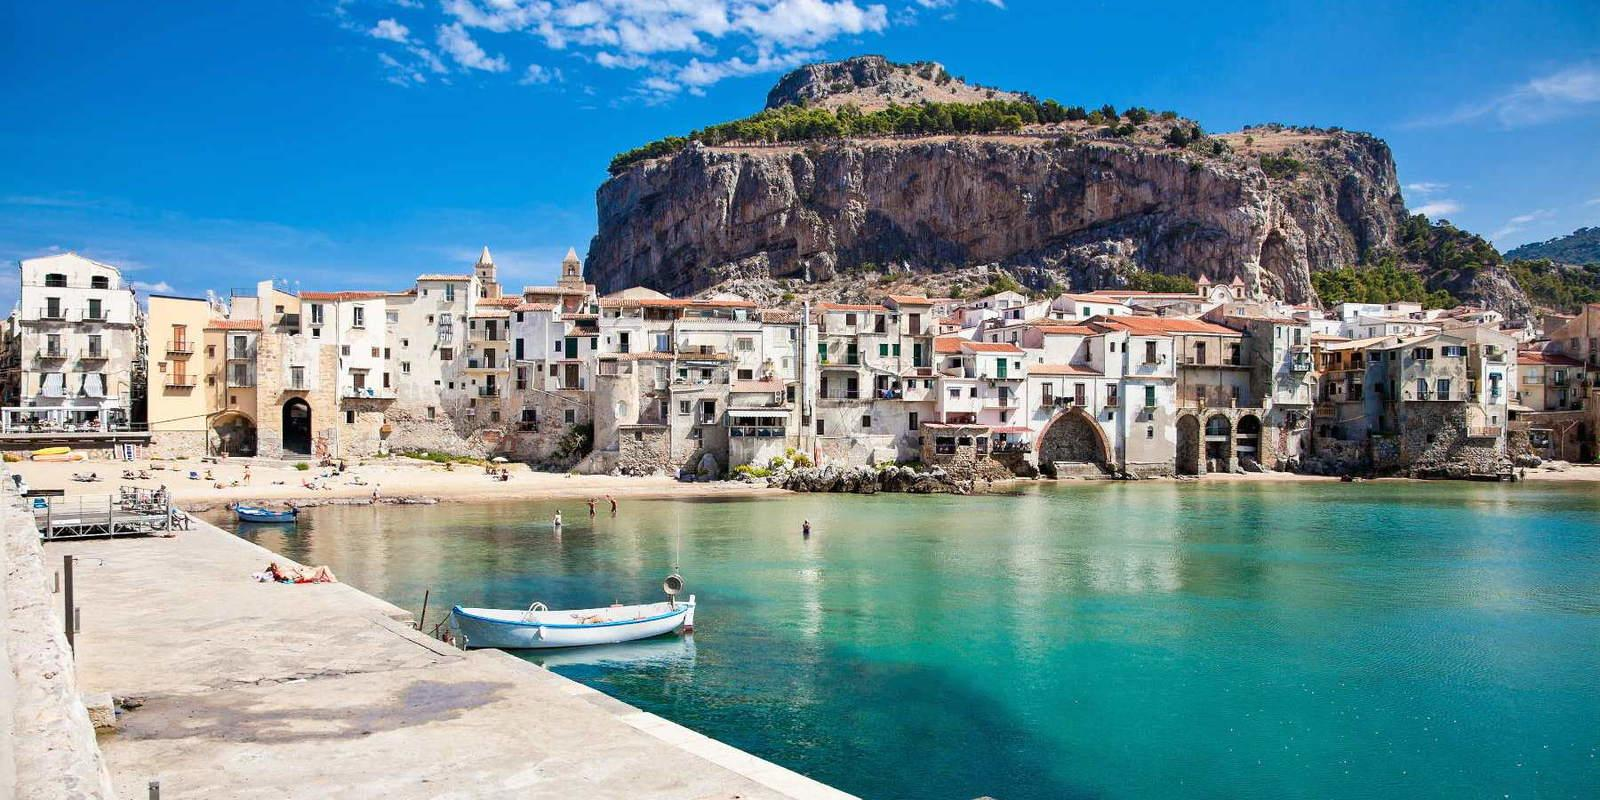 Magical Aeolian and romantic Sicily - From Tropea to Palermo